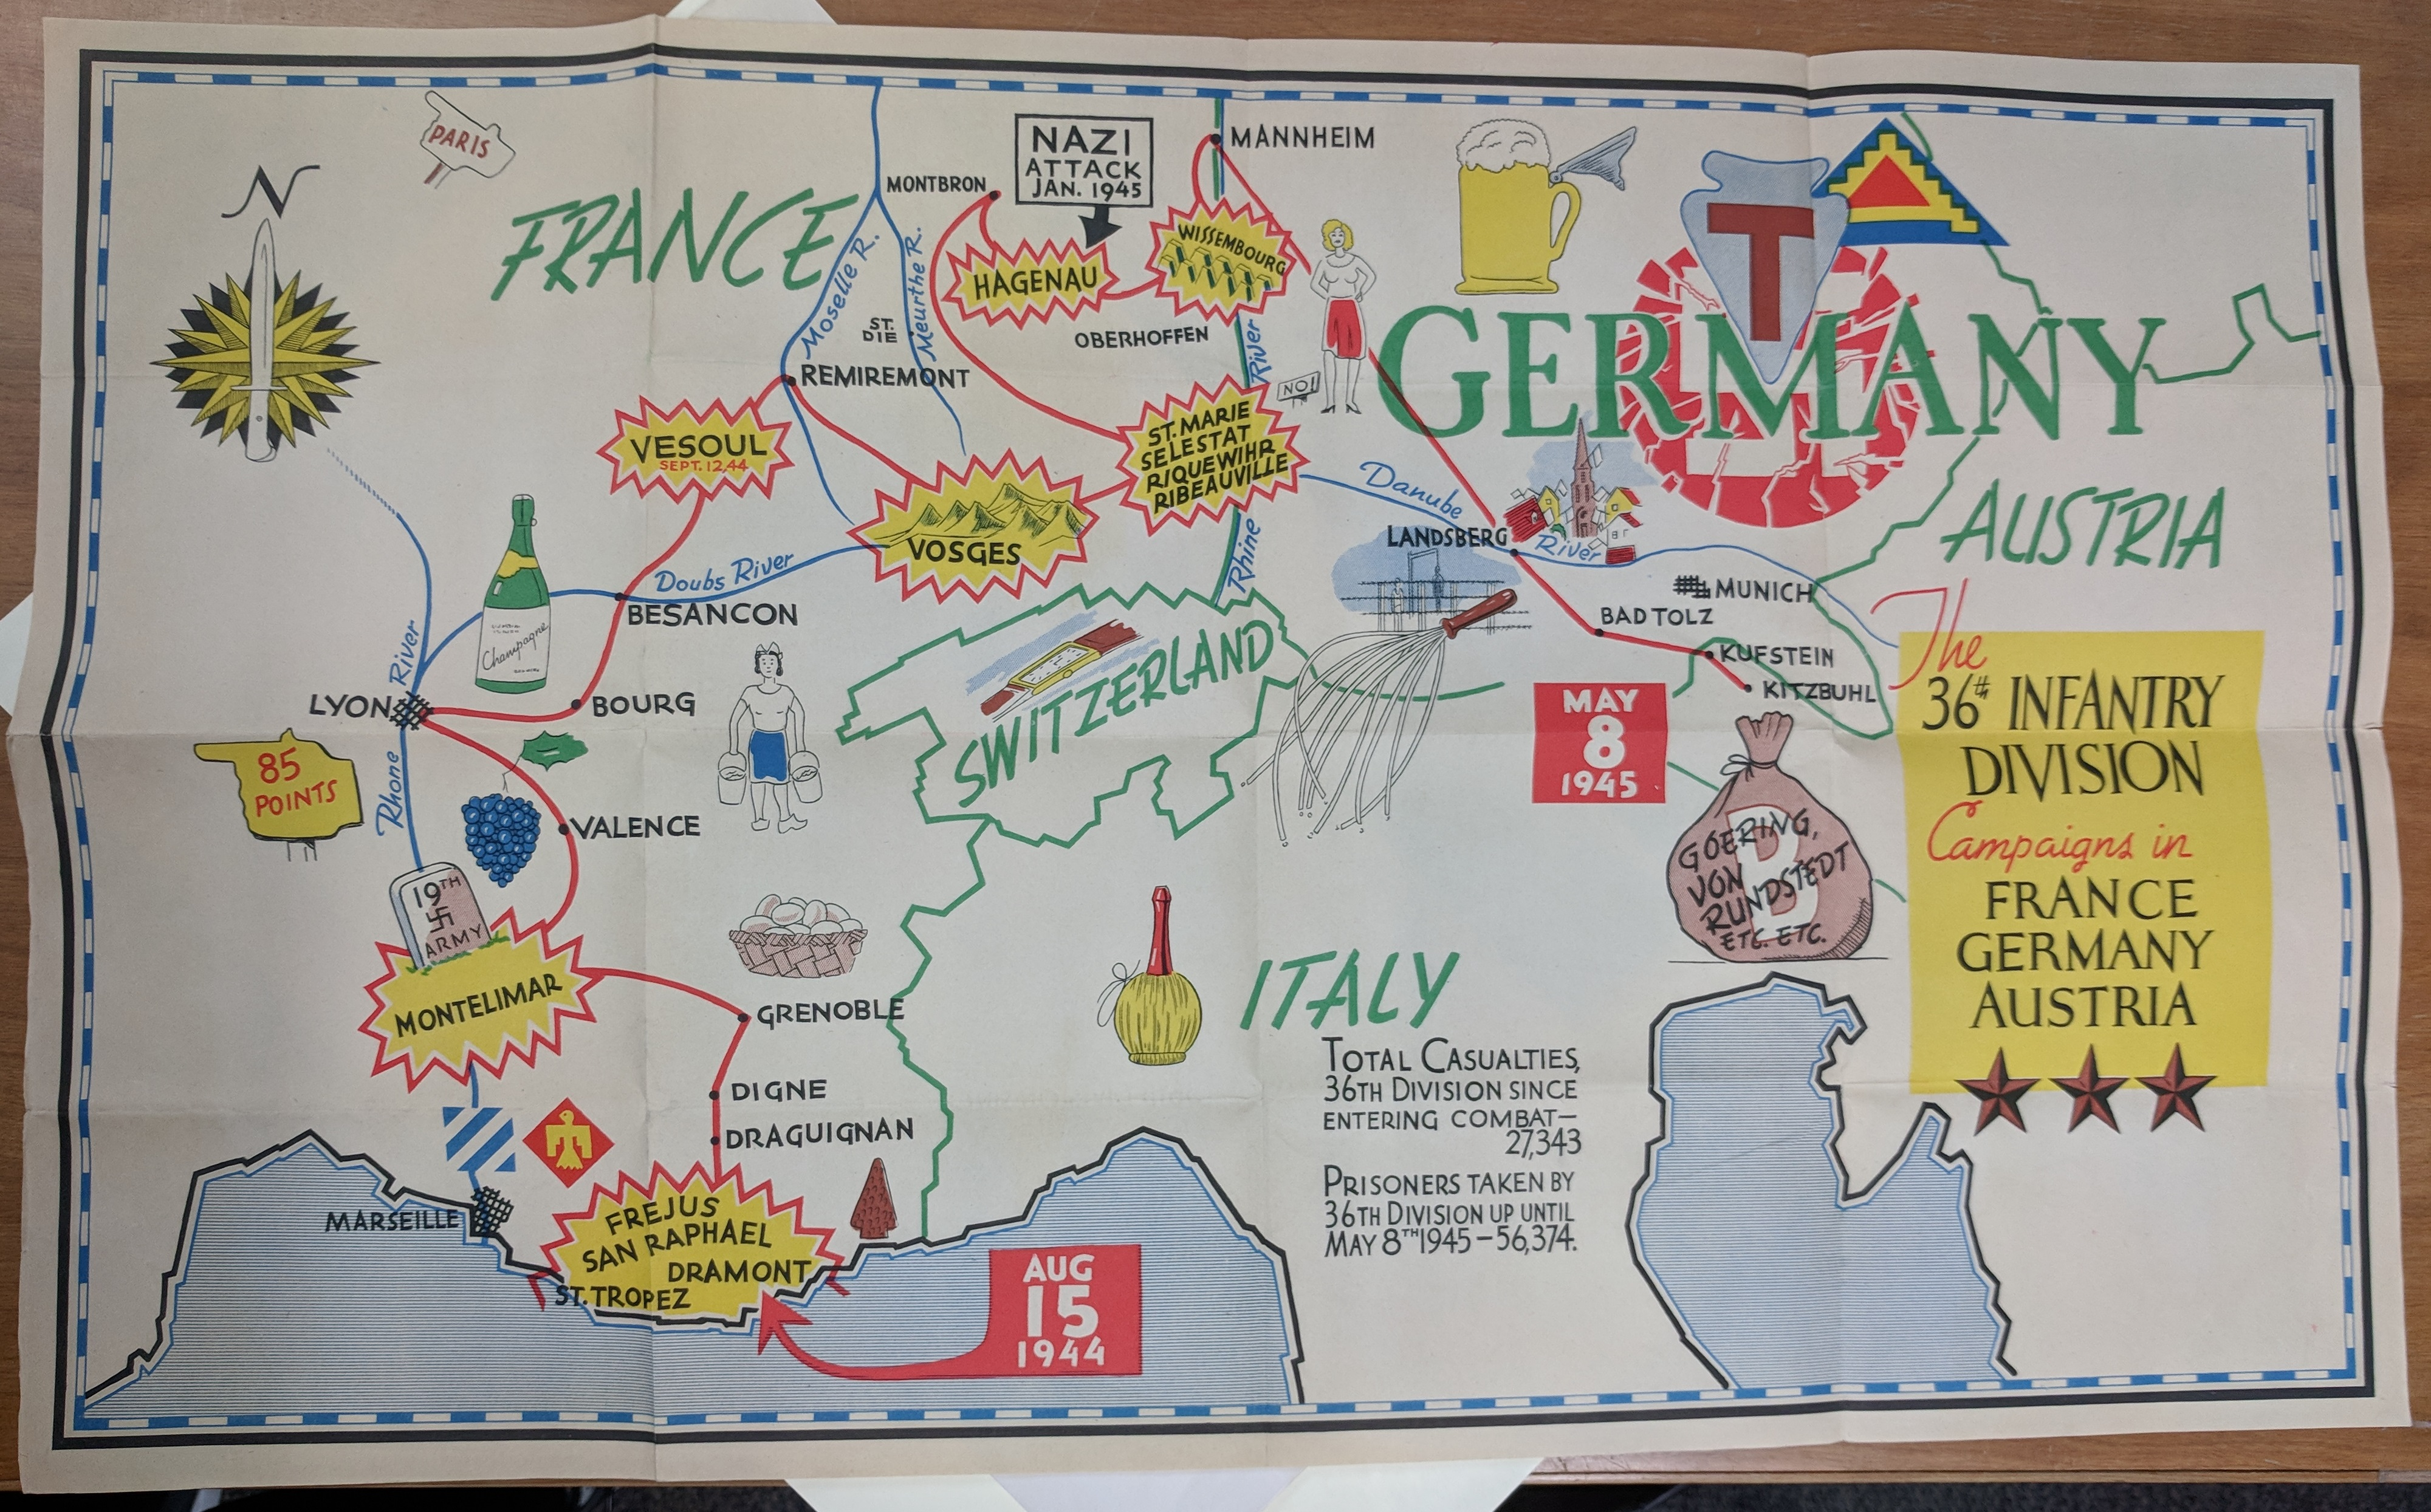 campaigns of the 36th france germany austria